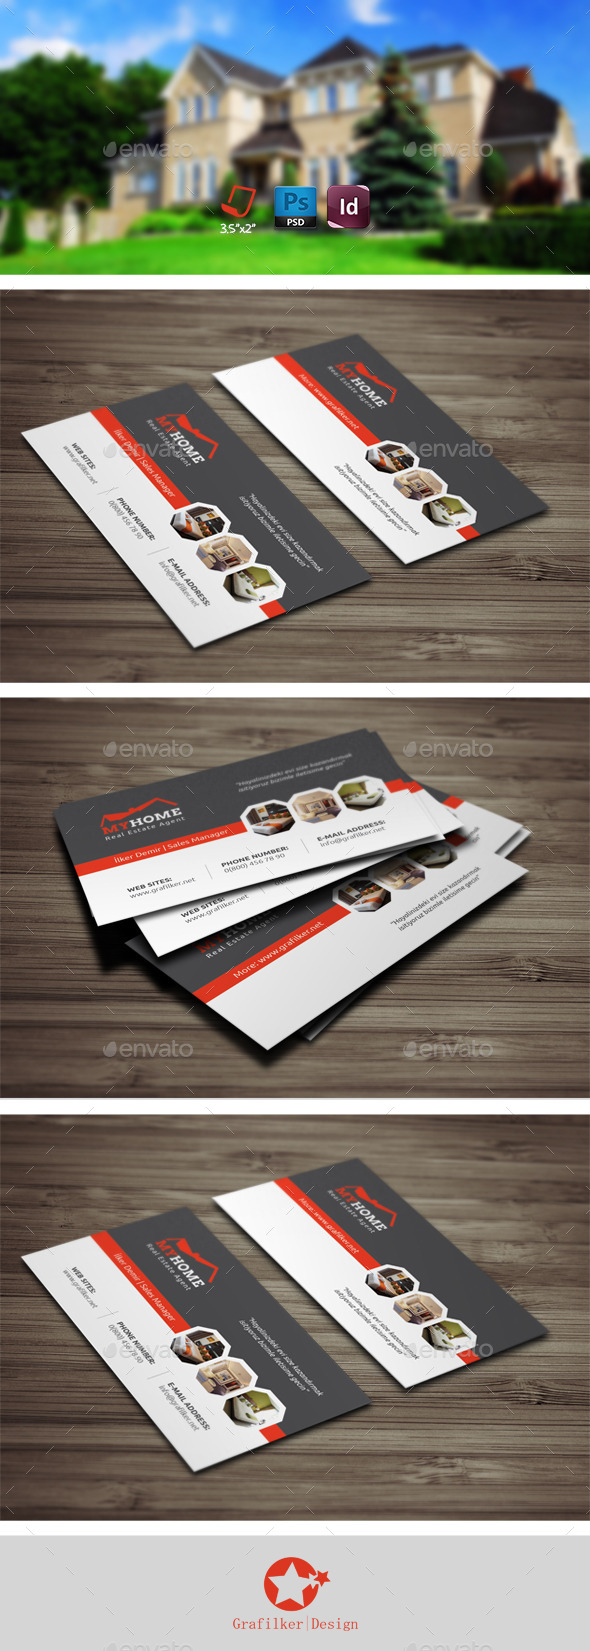 Real Estate Business Card Templates - Business Cards Print Templates